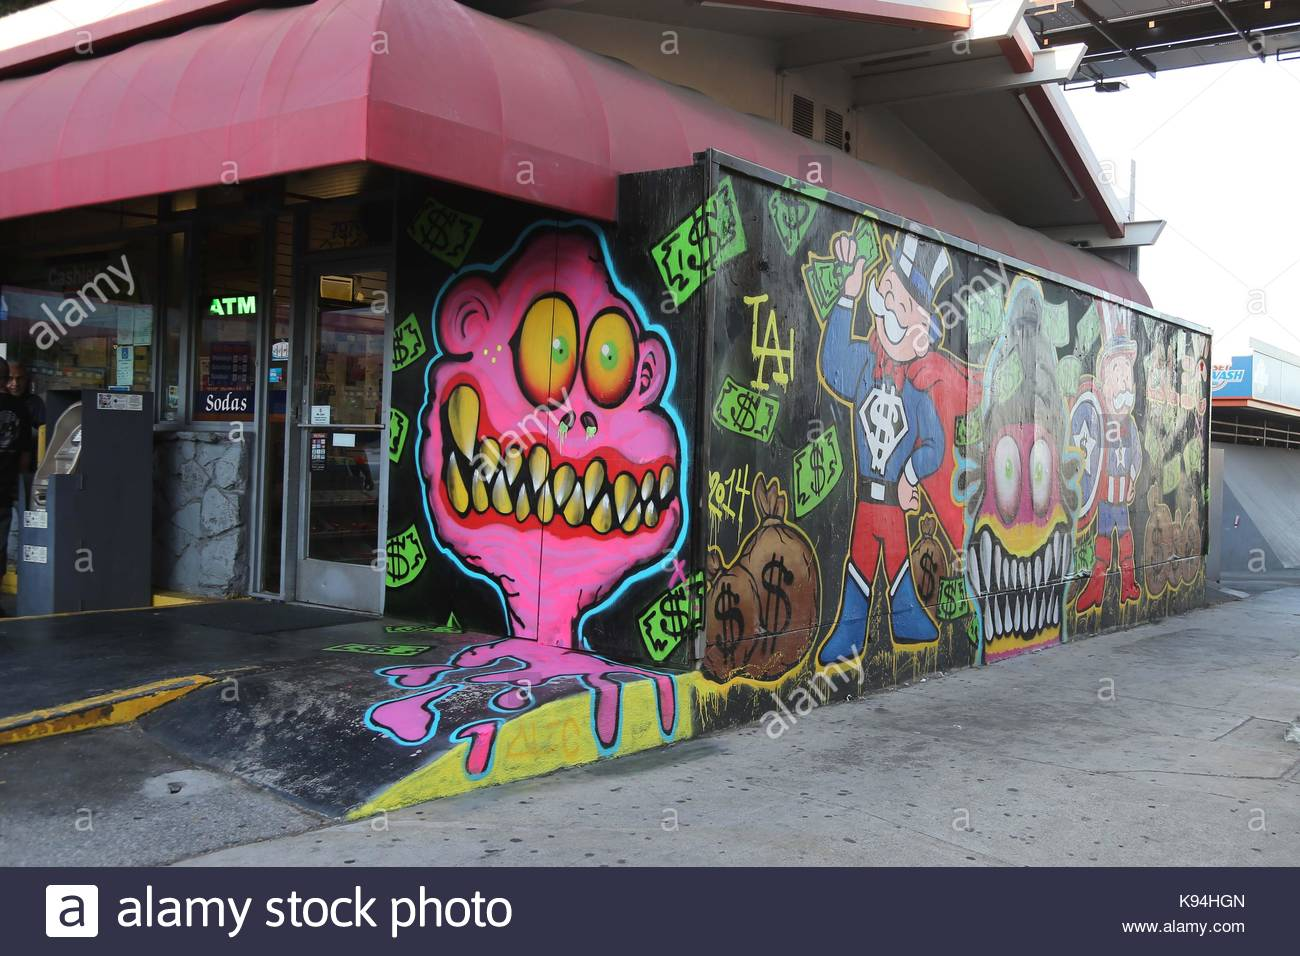 Chris Brown Chris Browns Graffiti Art Work On The Famed Norms 76 Gas Station On The Sunset Strip